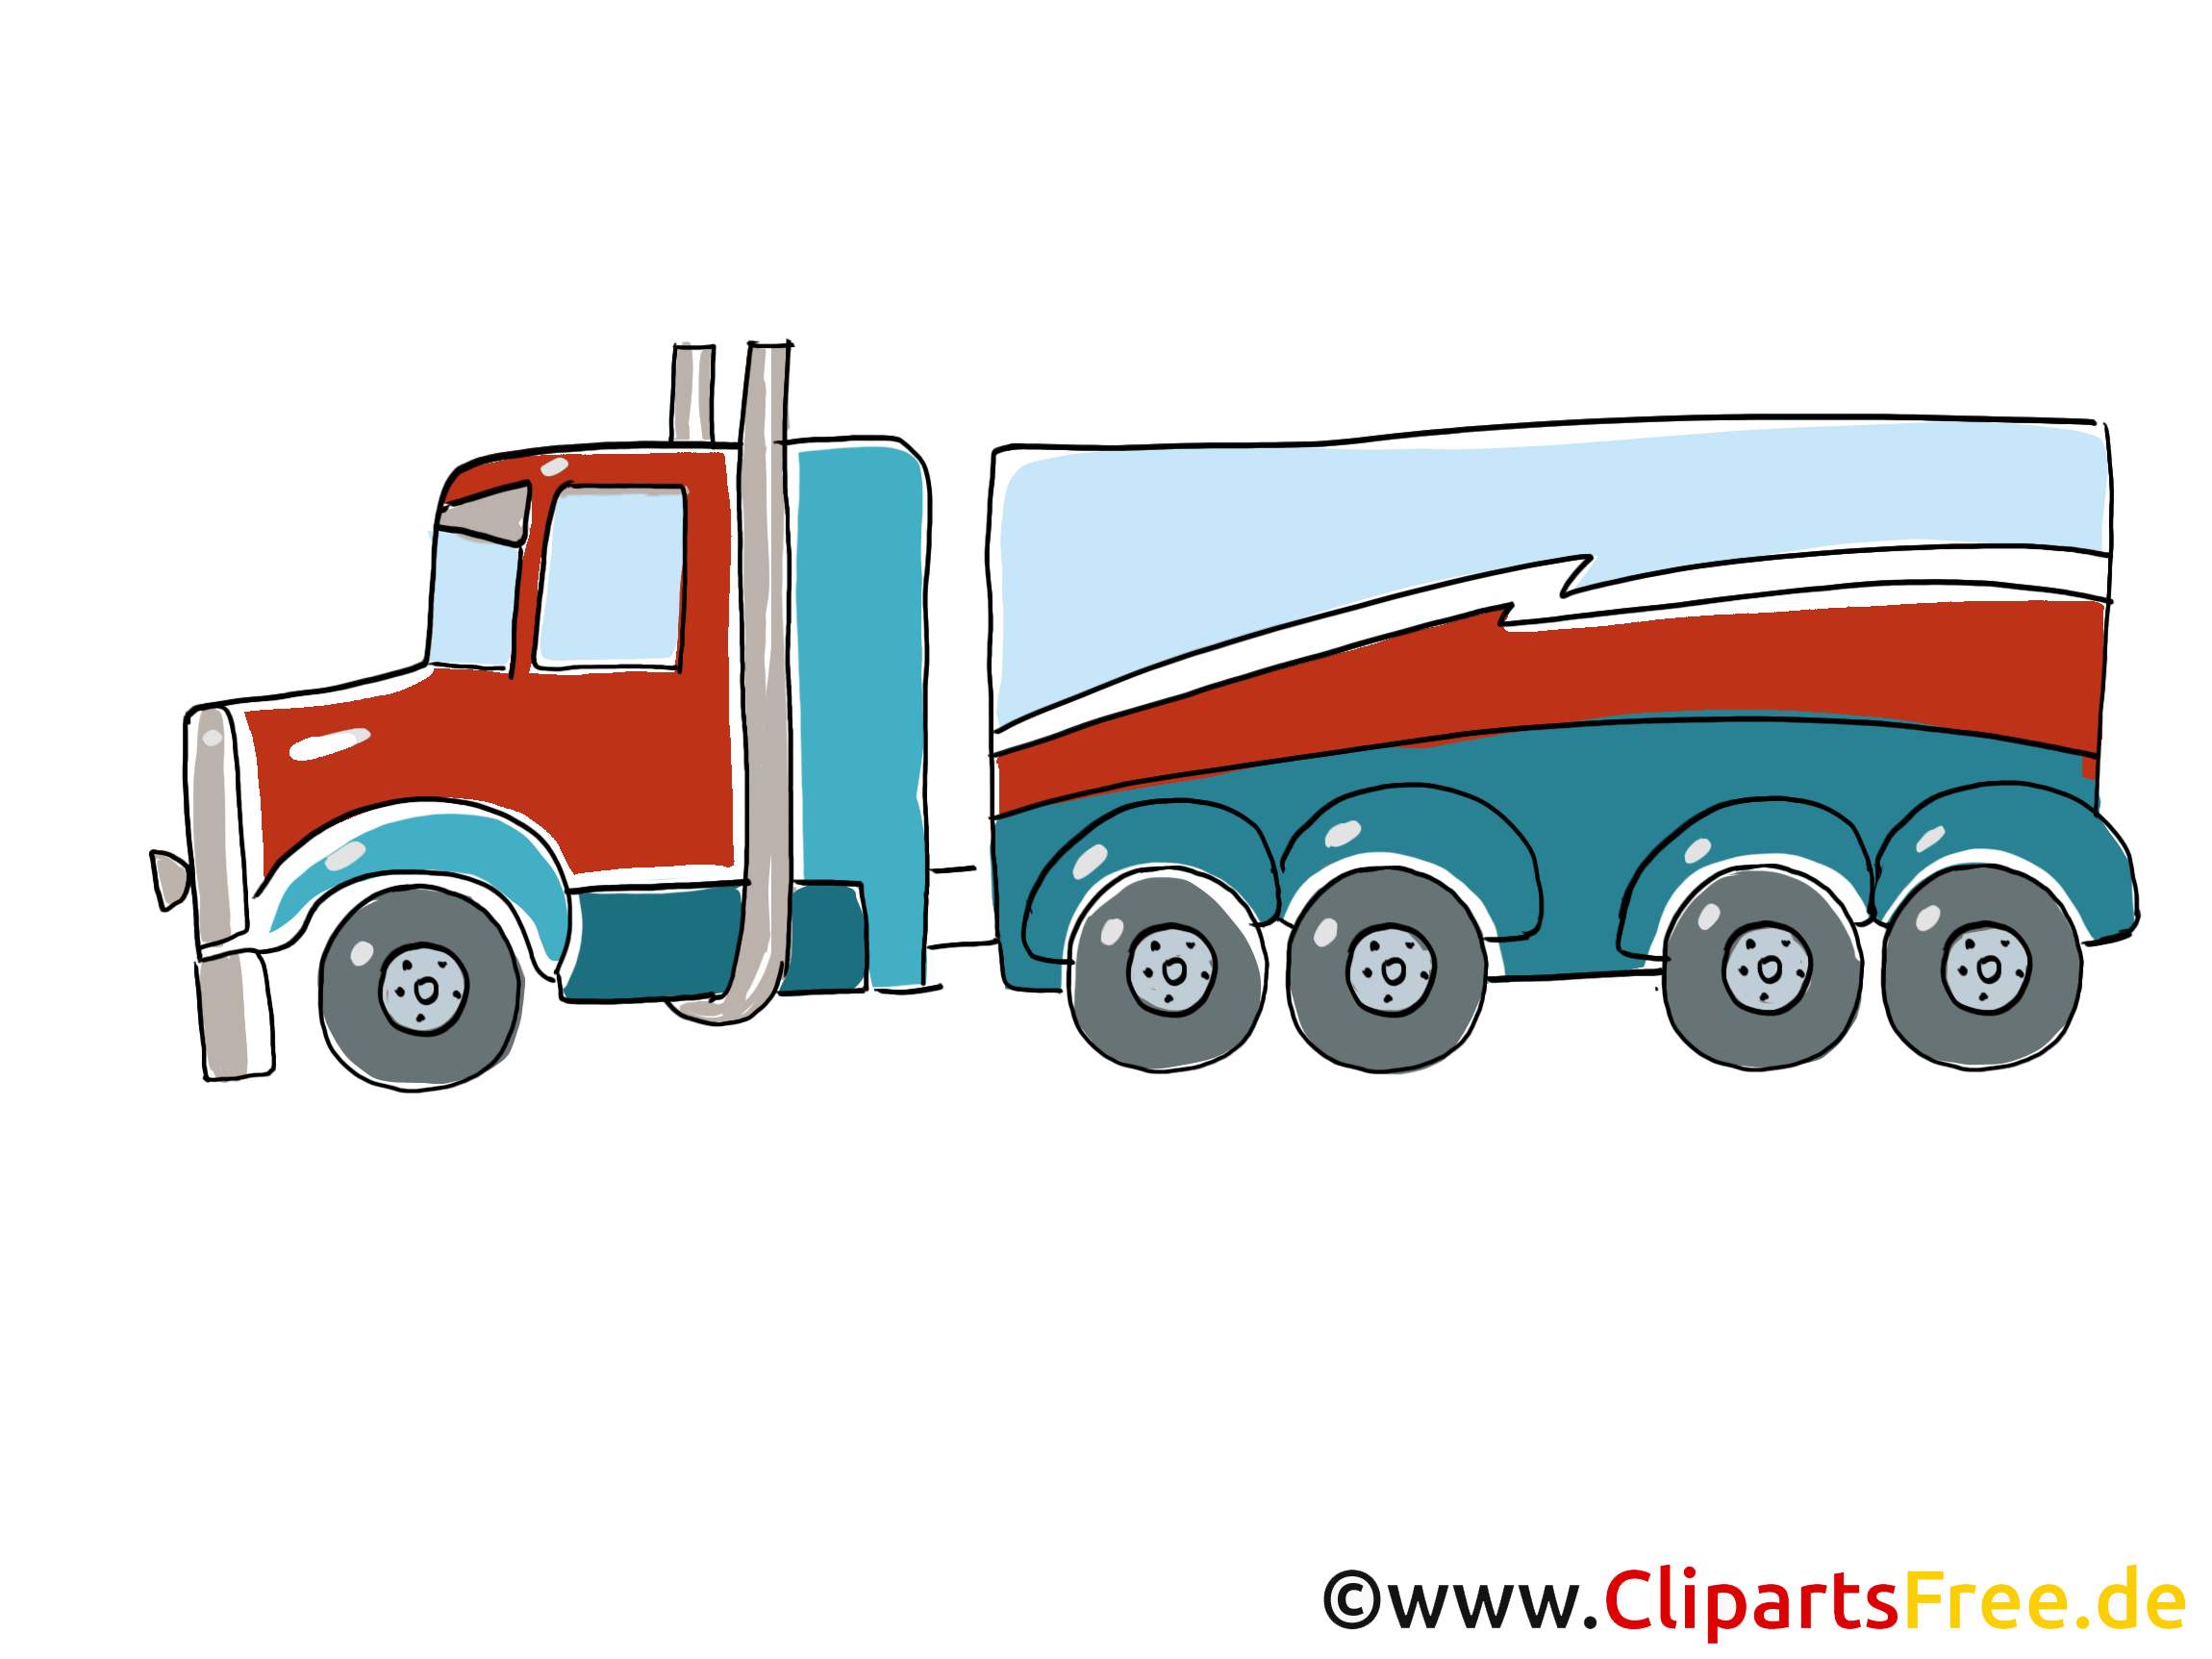 Camion illustration à télécharger gratuite